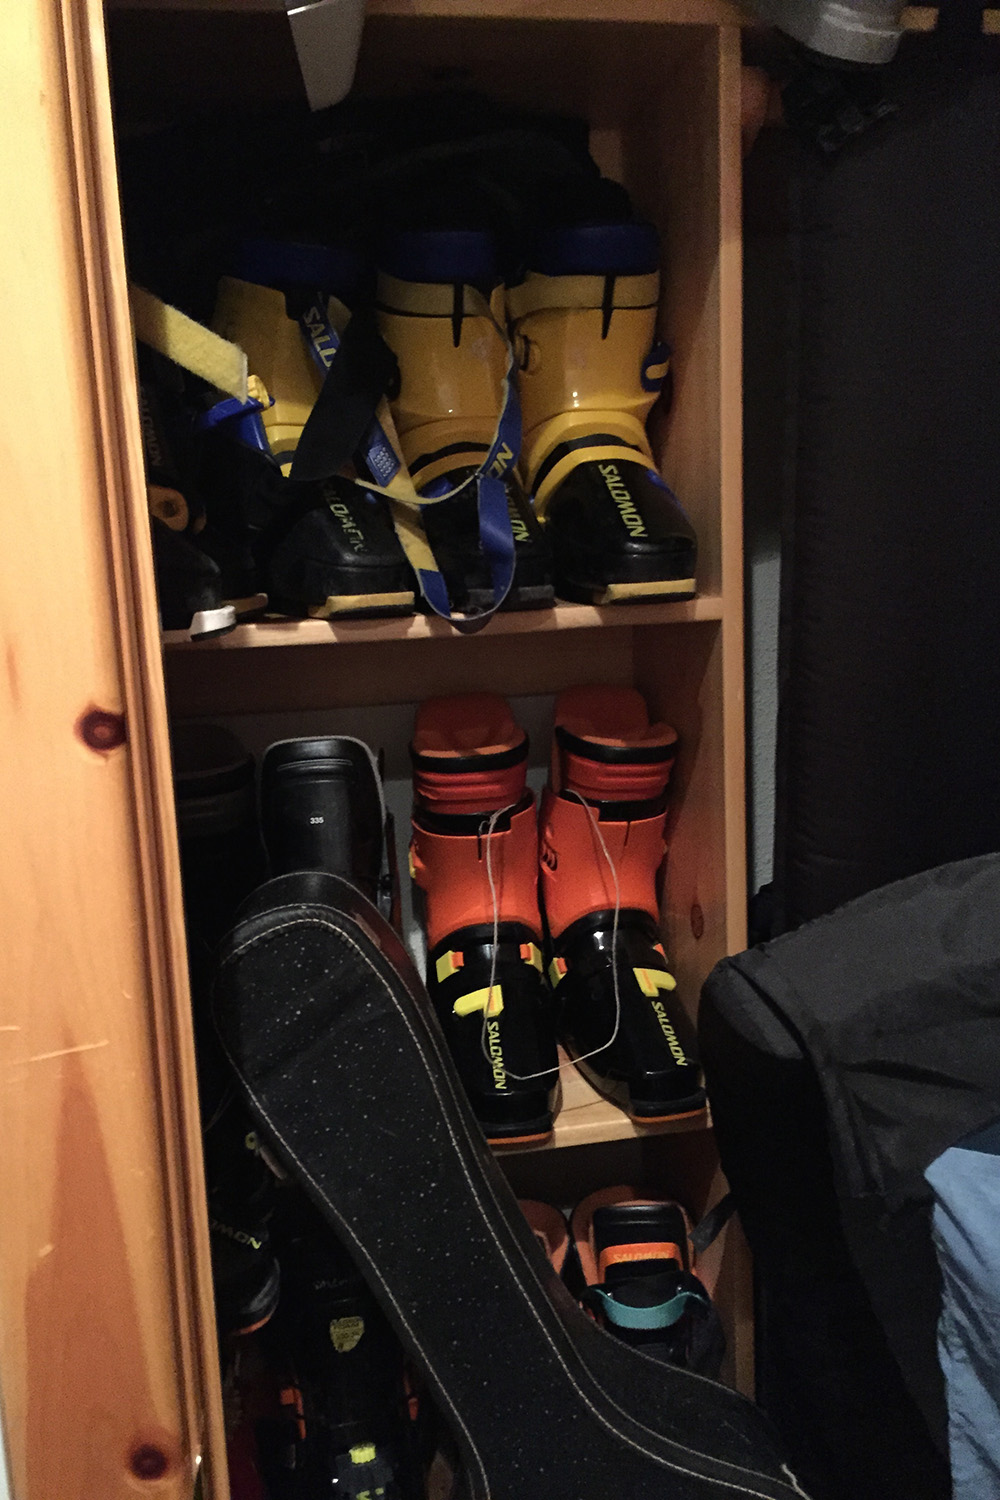 Some of his original Salomon rear entry boots.